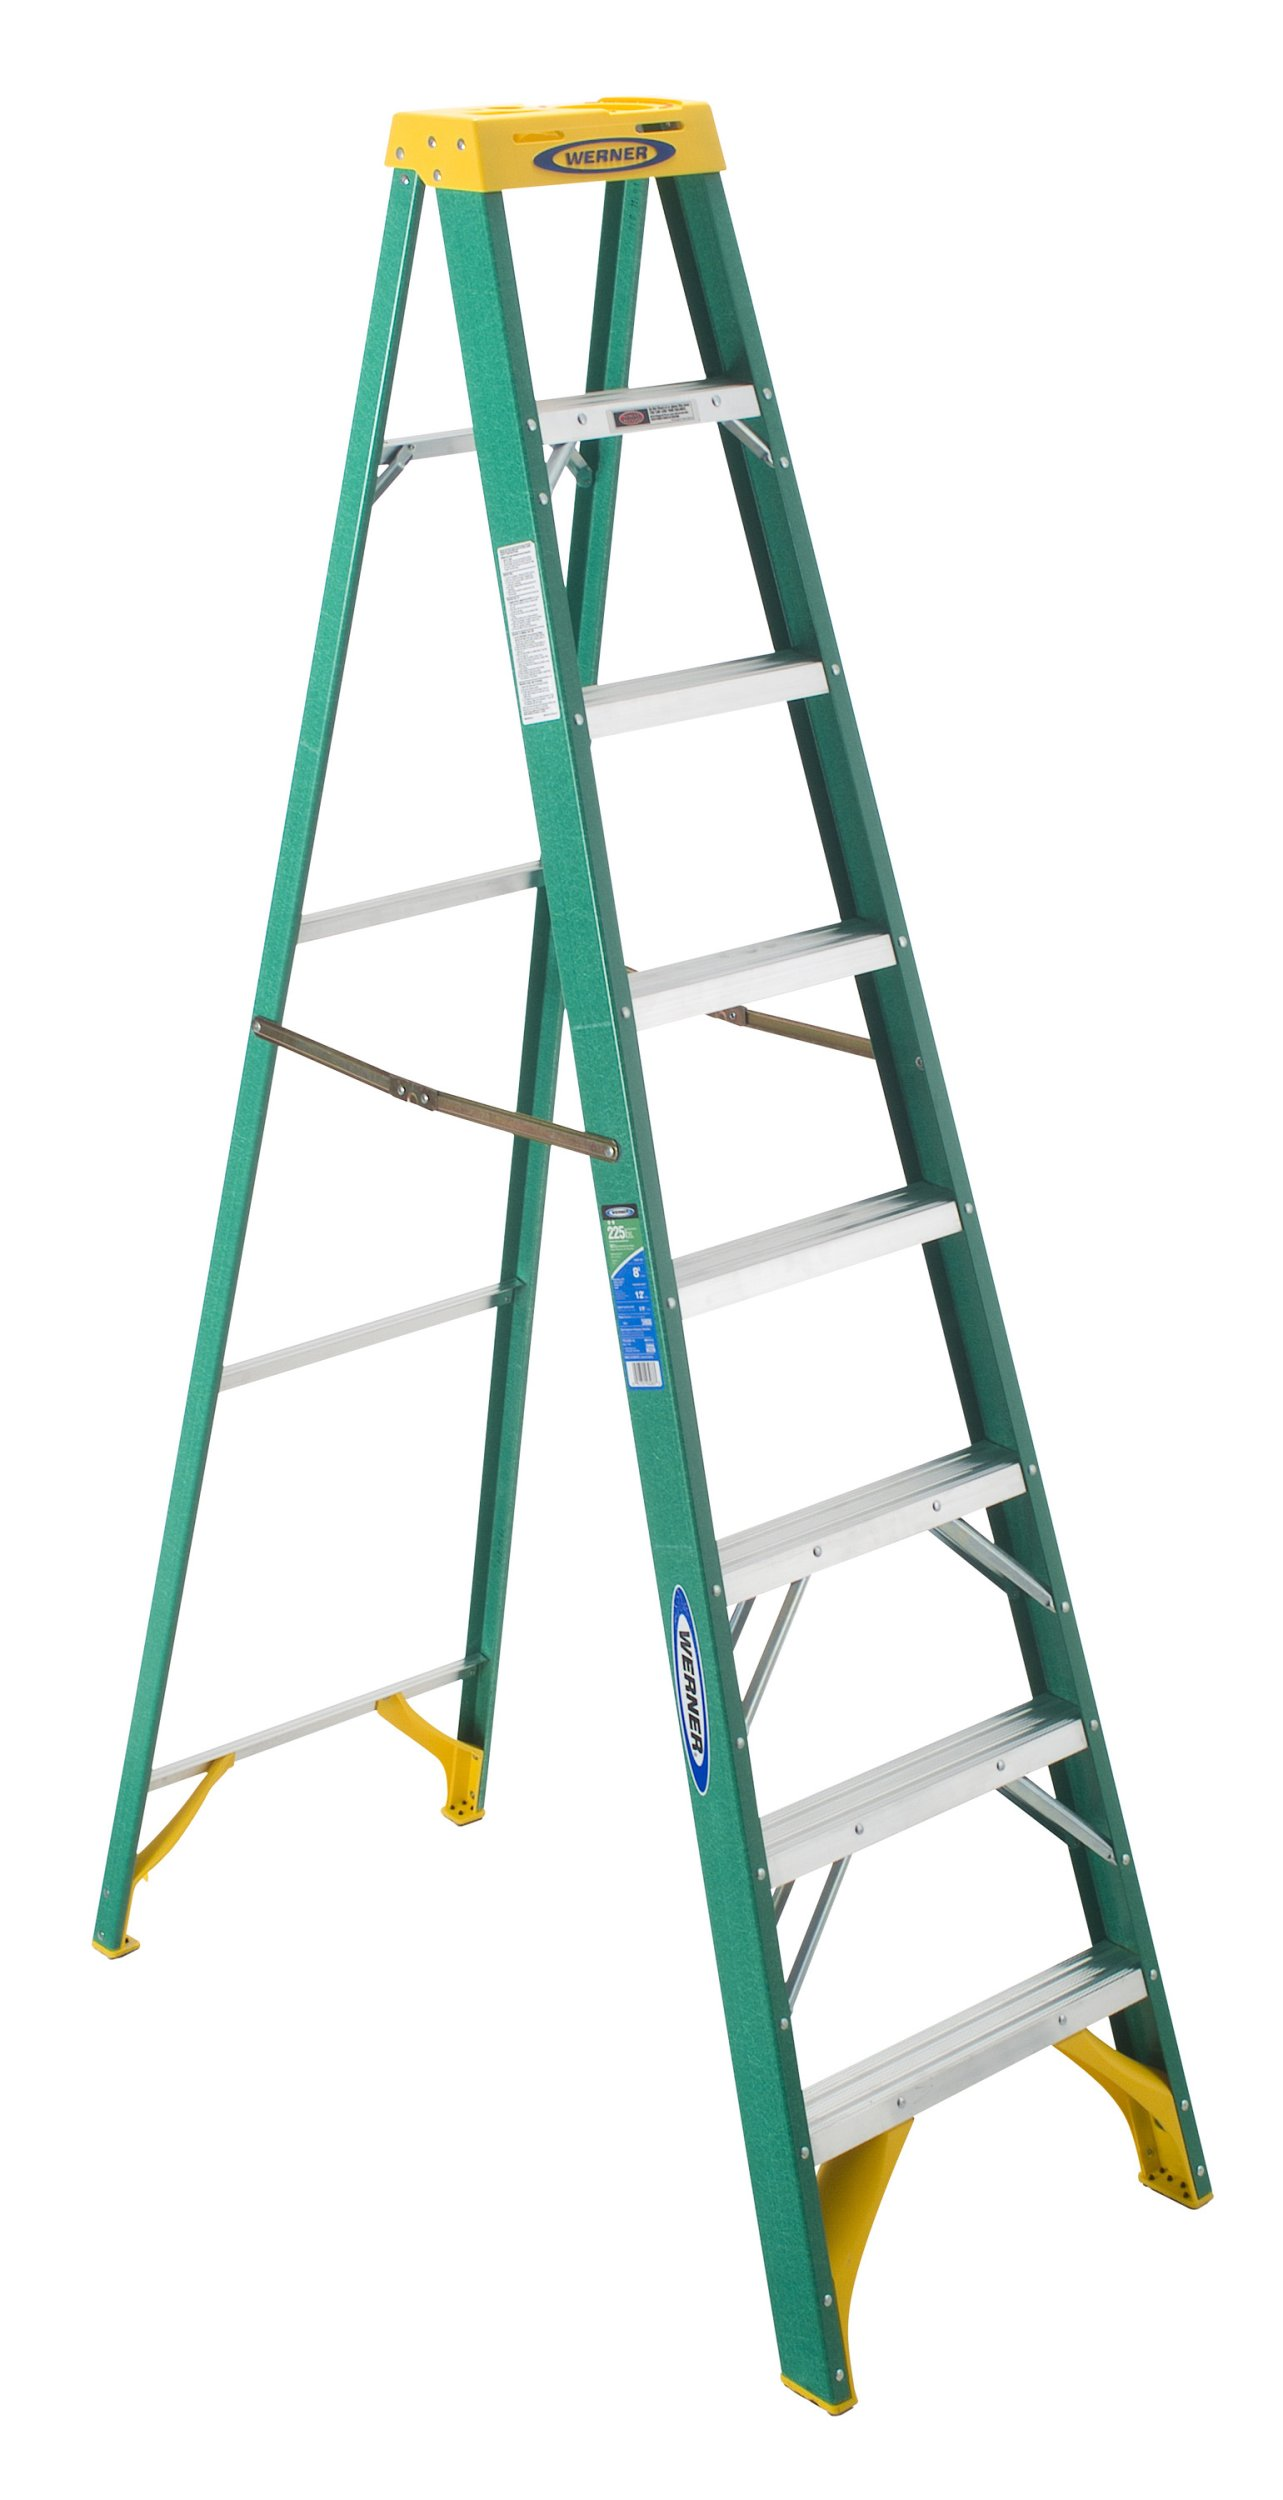 Werner 5908 225-Pound Duty Rating Type II Fiberglass Stepladder, 8-Foot